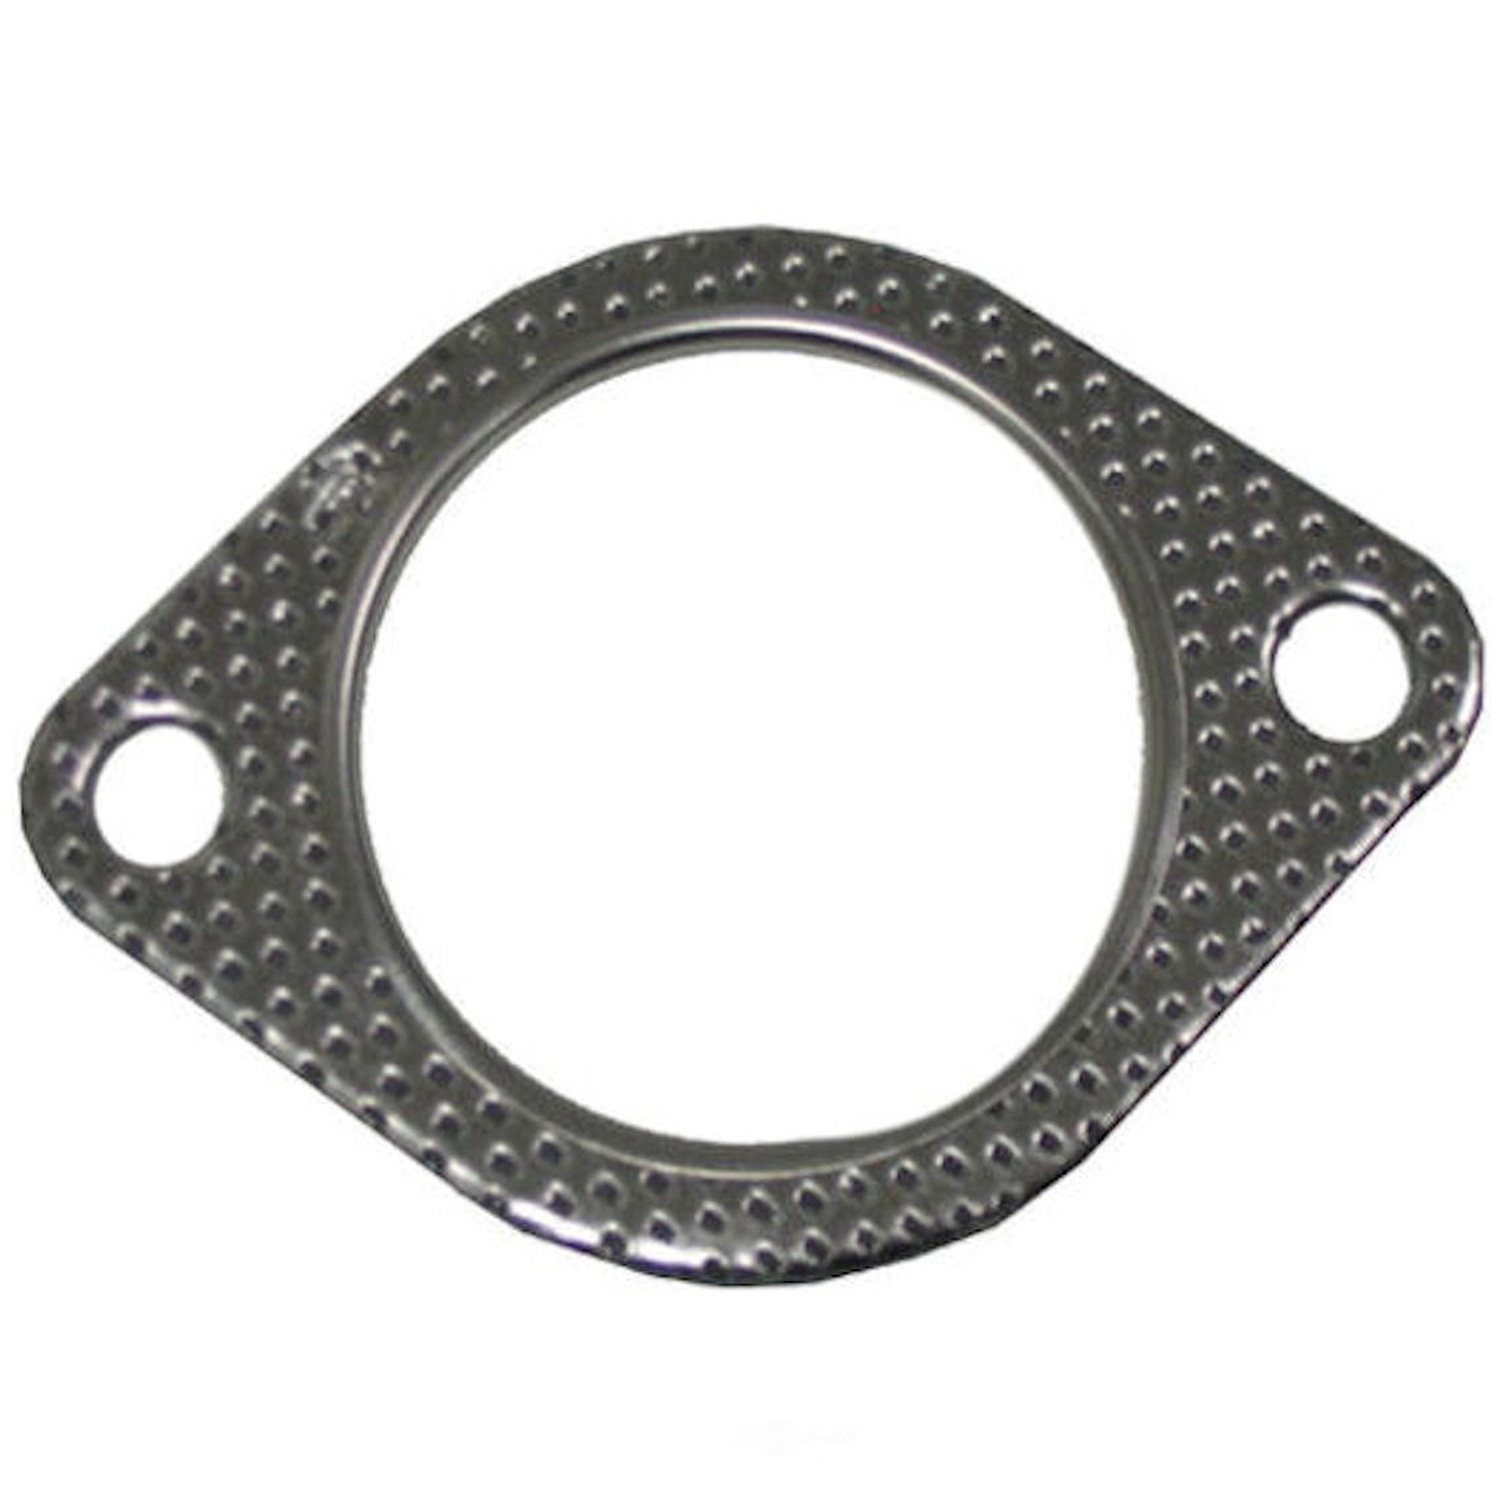 BOSAL 49 STATE CONVERTERS - Gasket (Outlet) - BSF 256-837